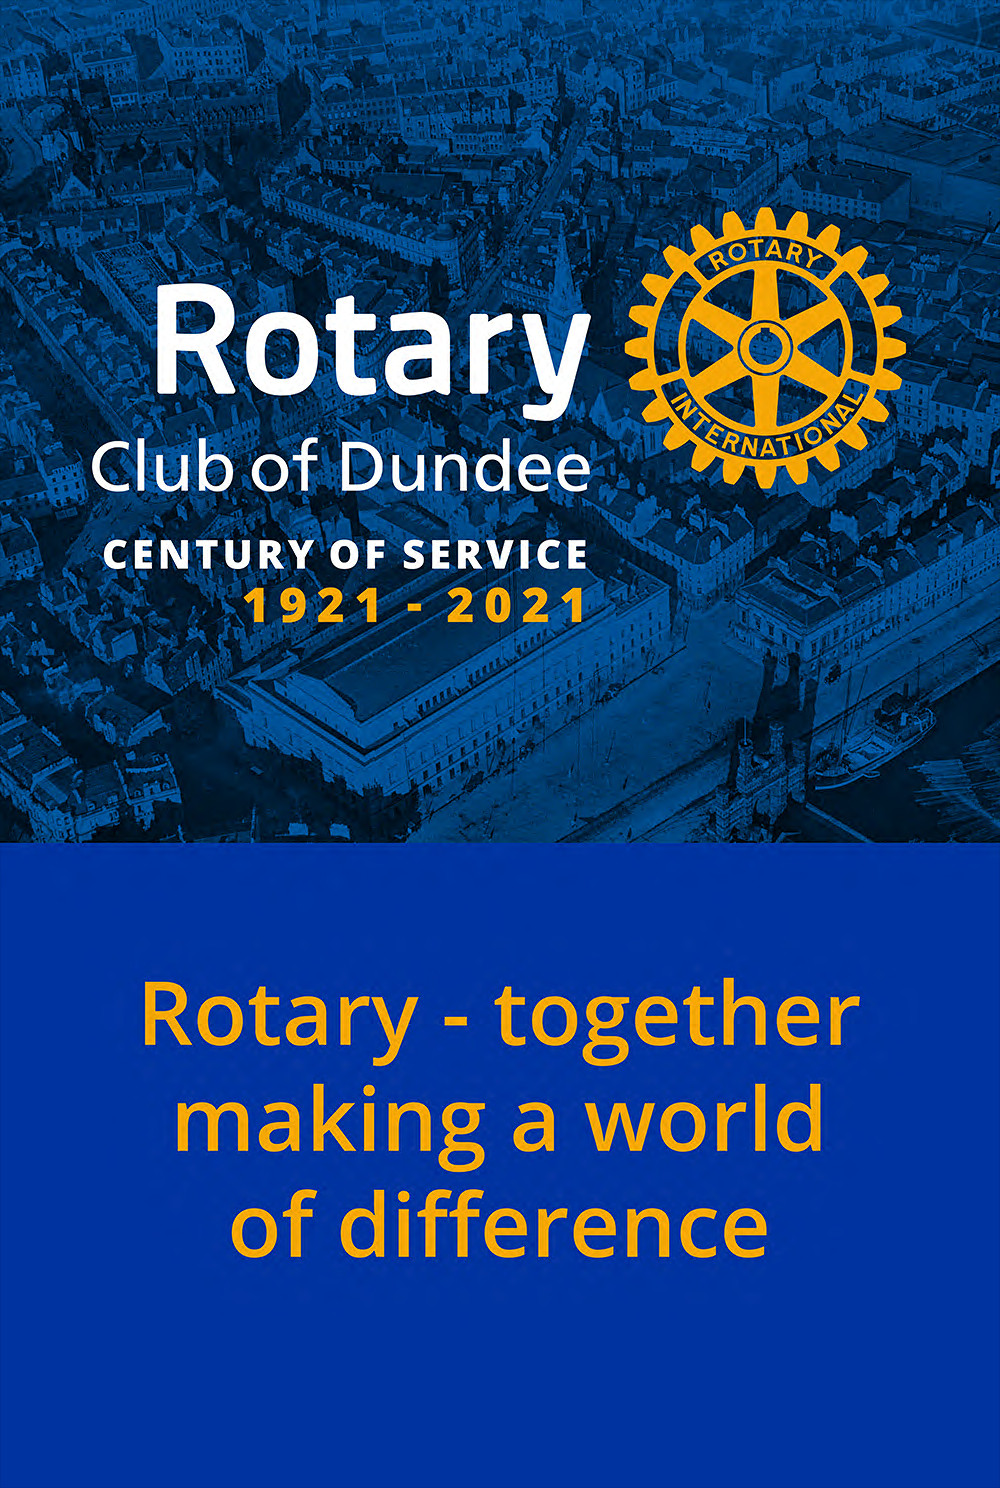 Rotary Club of Dundee Century of Service banner with a photo of old Dundee